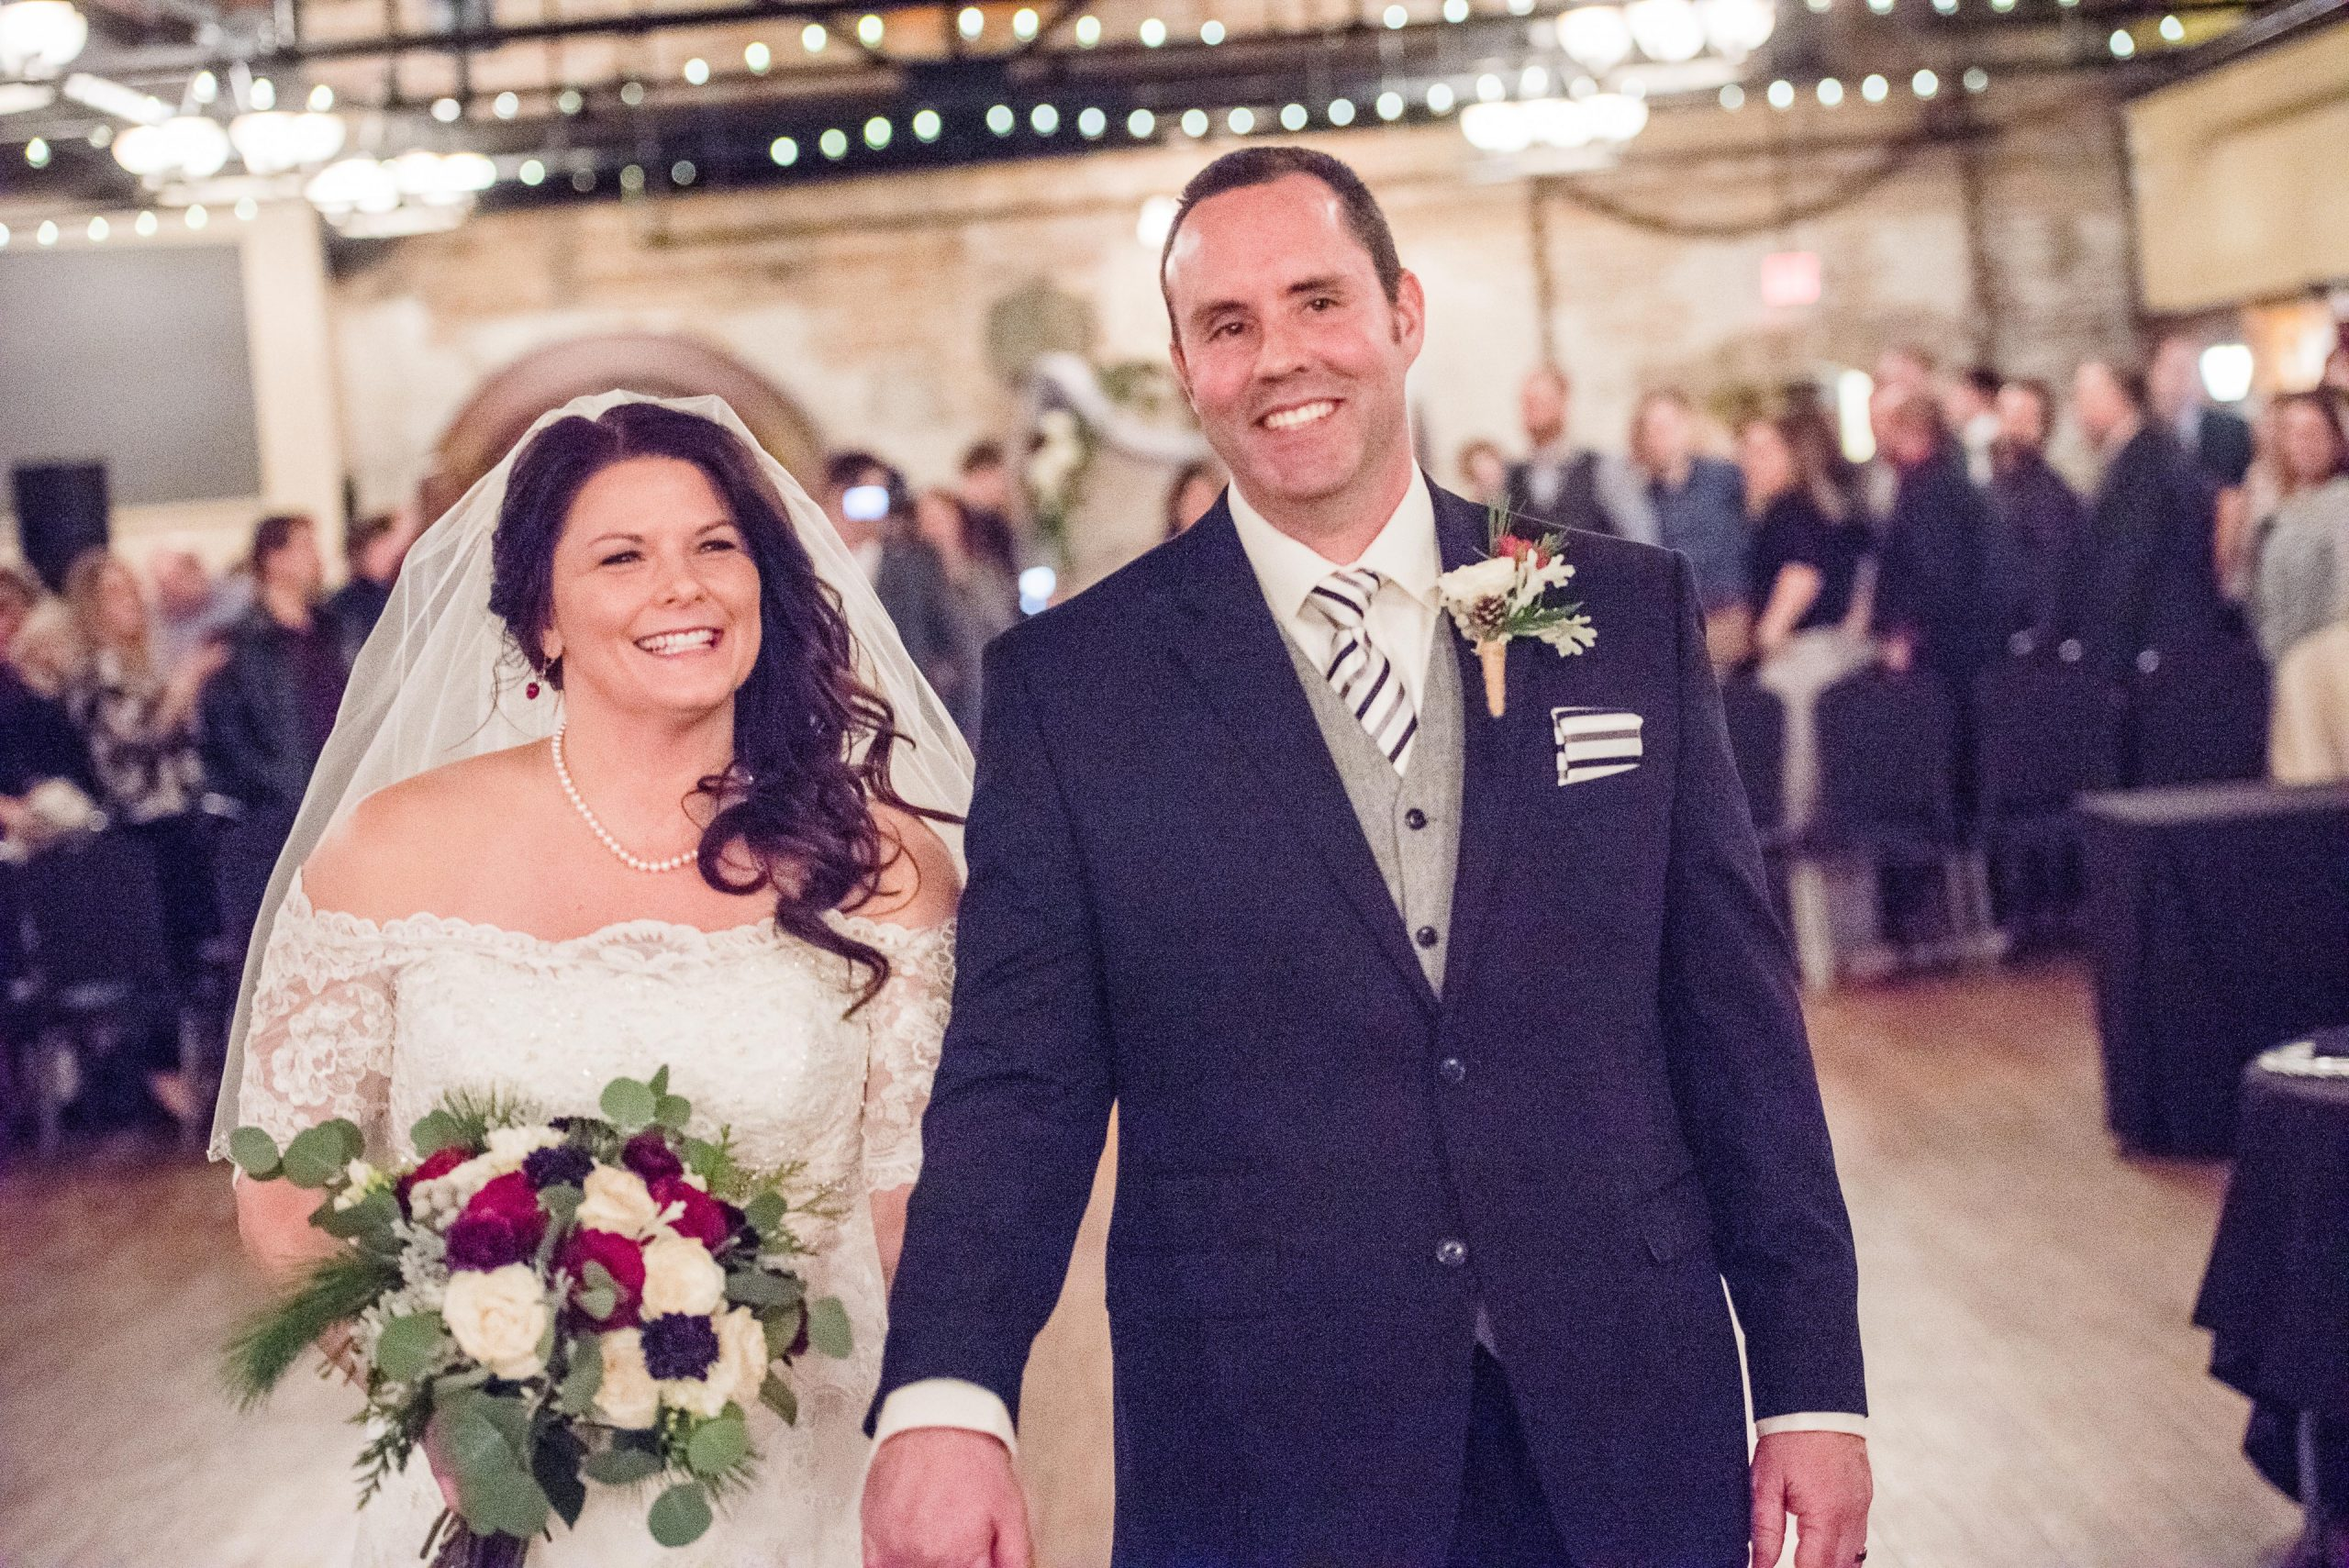 Owners Patrice and Drake wedding picture